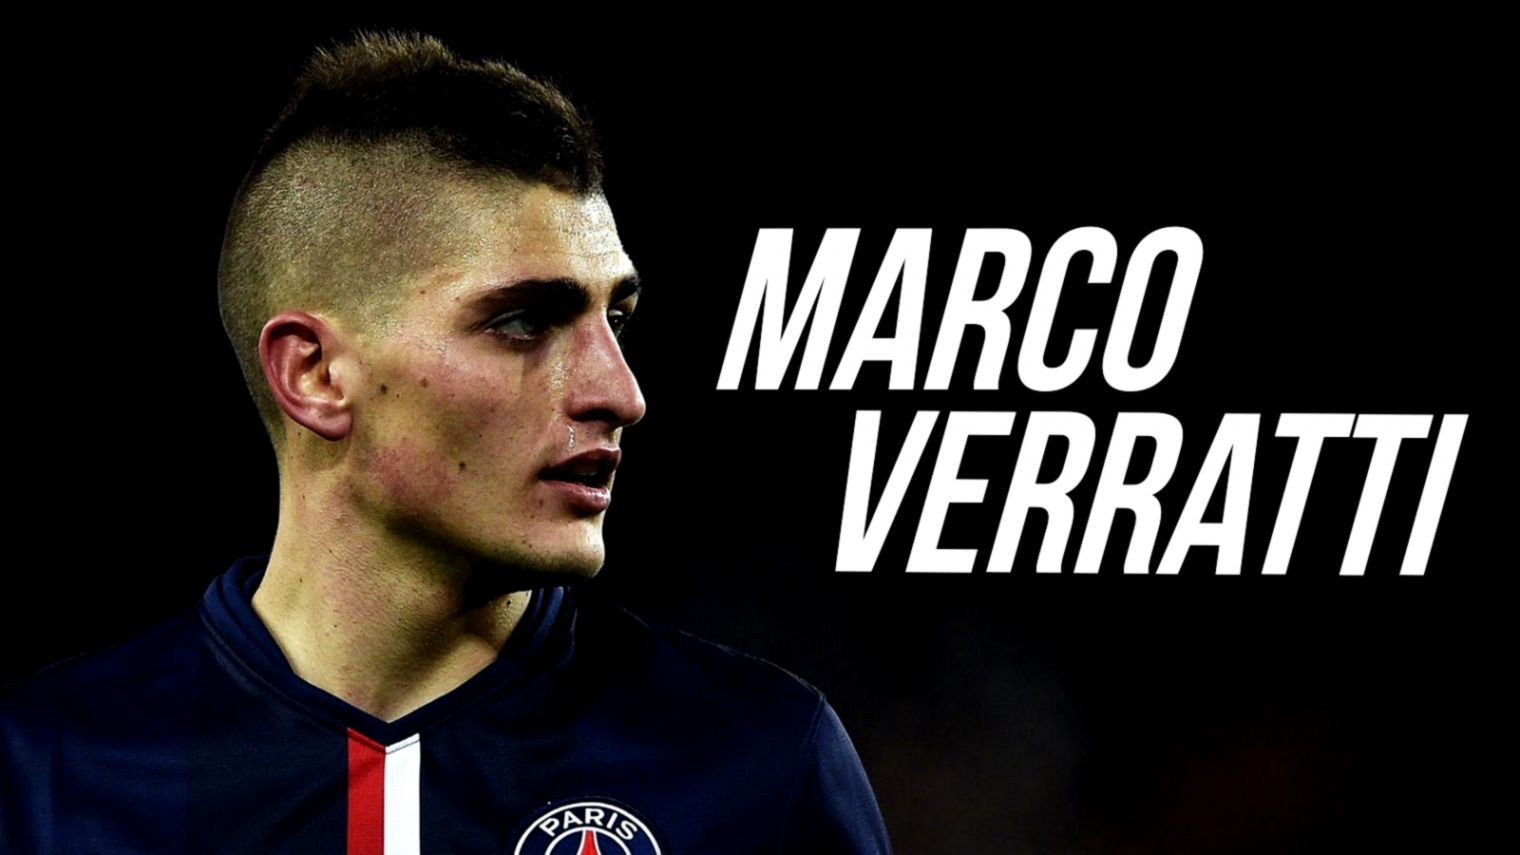 Marco Verratti   Paris Saint Germain   Skills Assists amp Goals